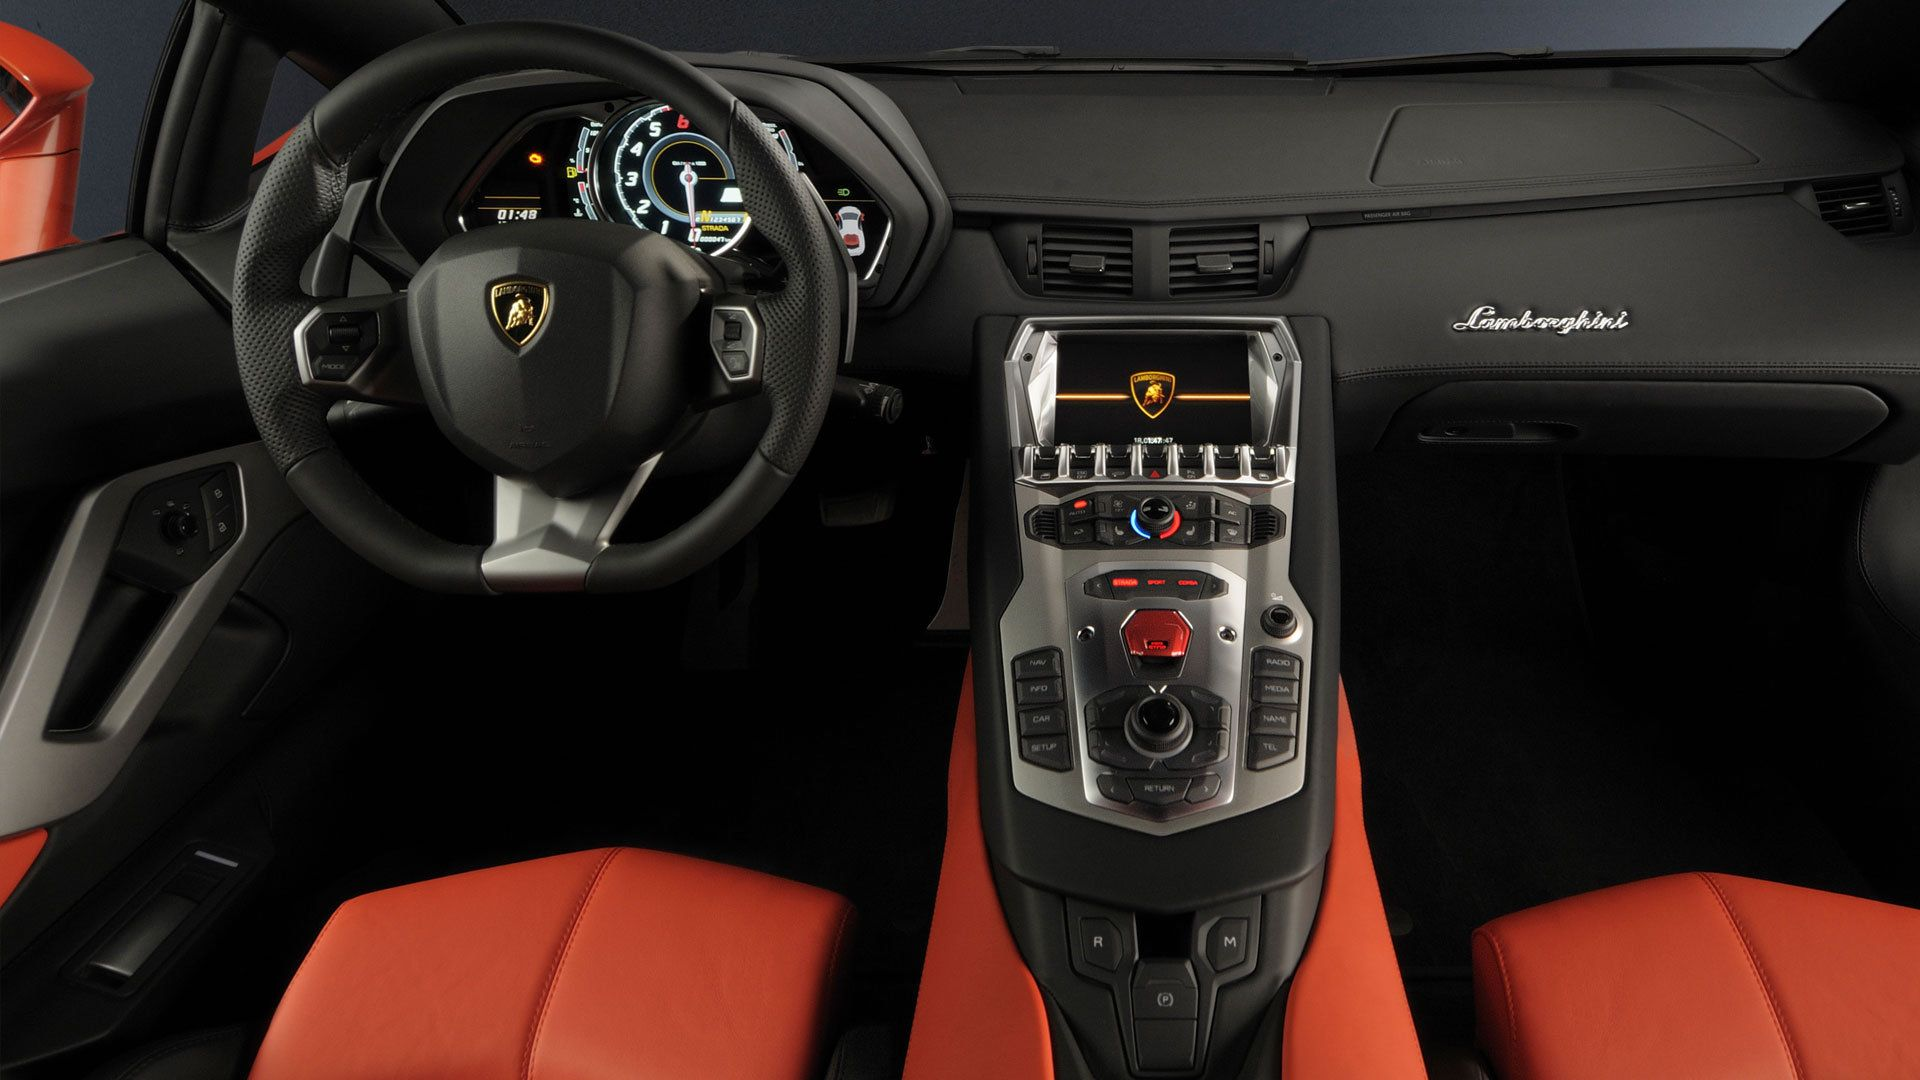 Lamborghini Aventador Lp 700 4 Dashboard Interior Wallpaper